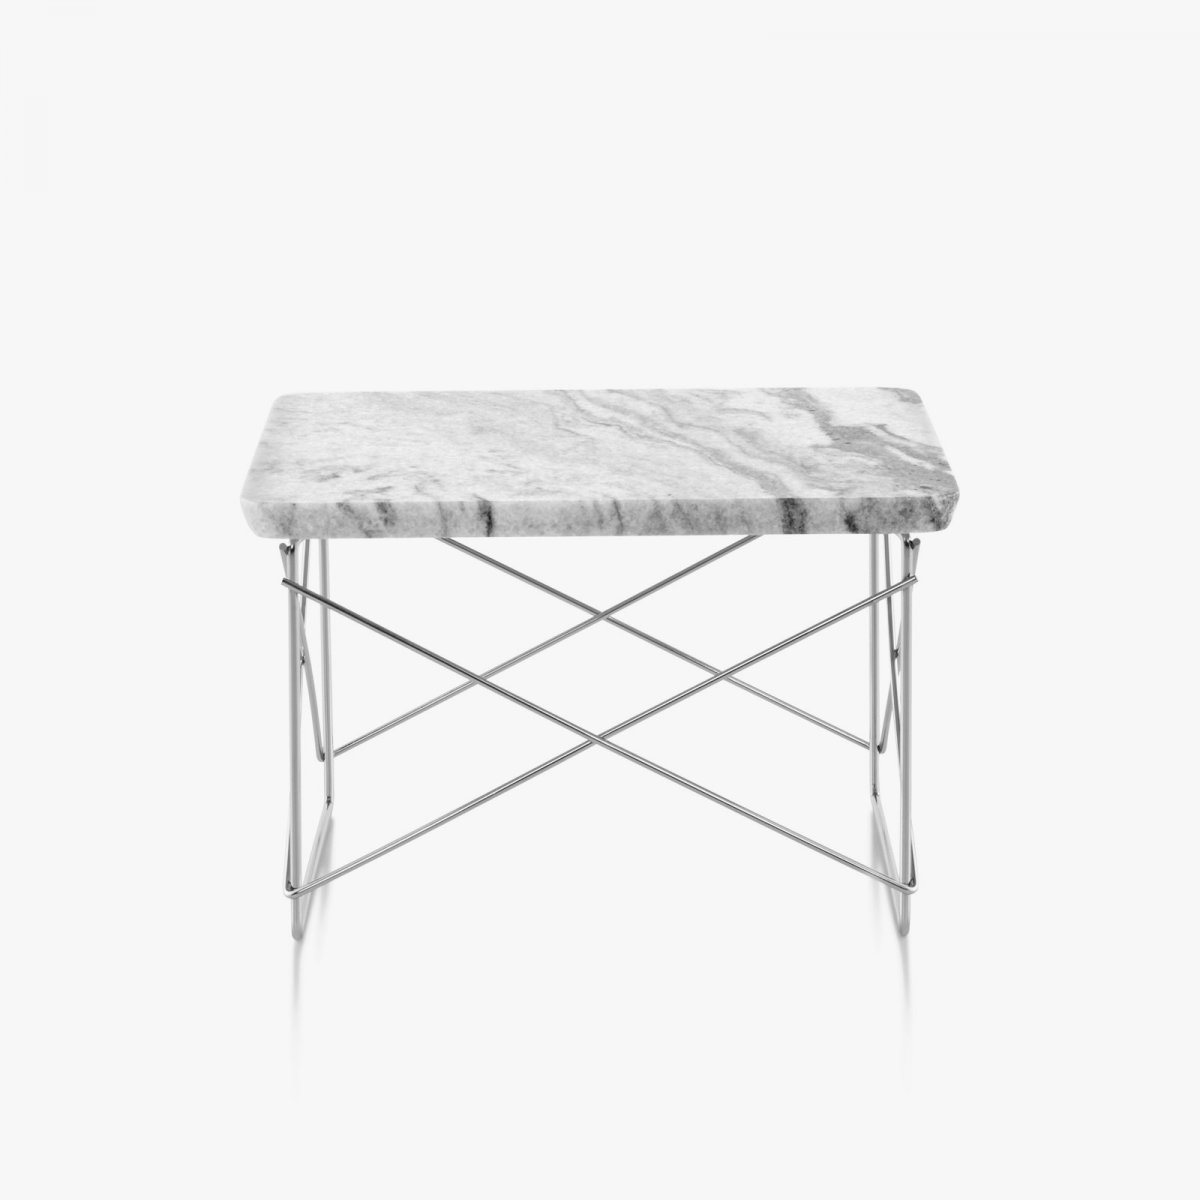 Eames Wire Base Low Table, Georgia gray marble top with trivalent chrome base.